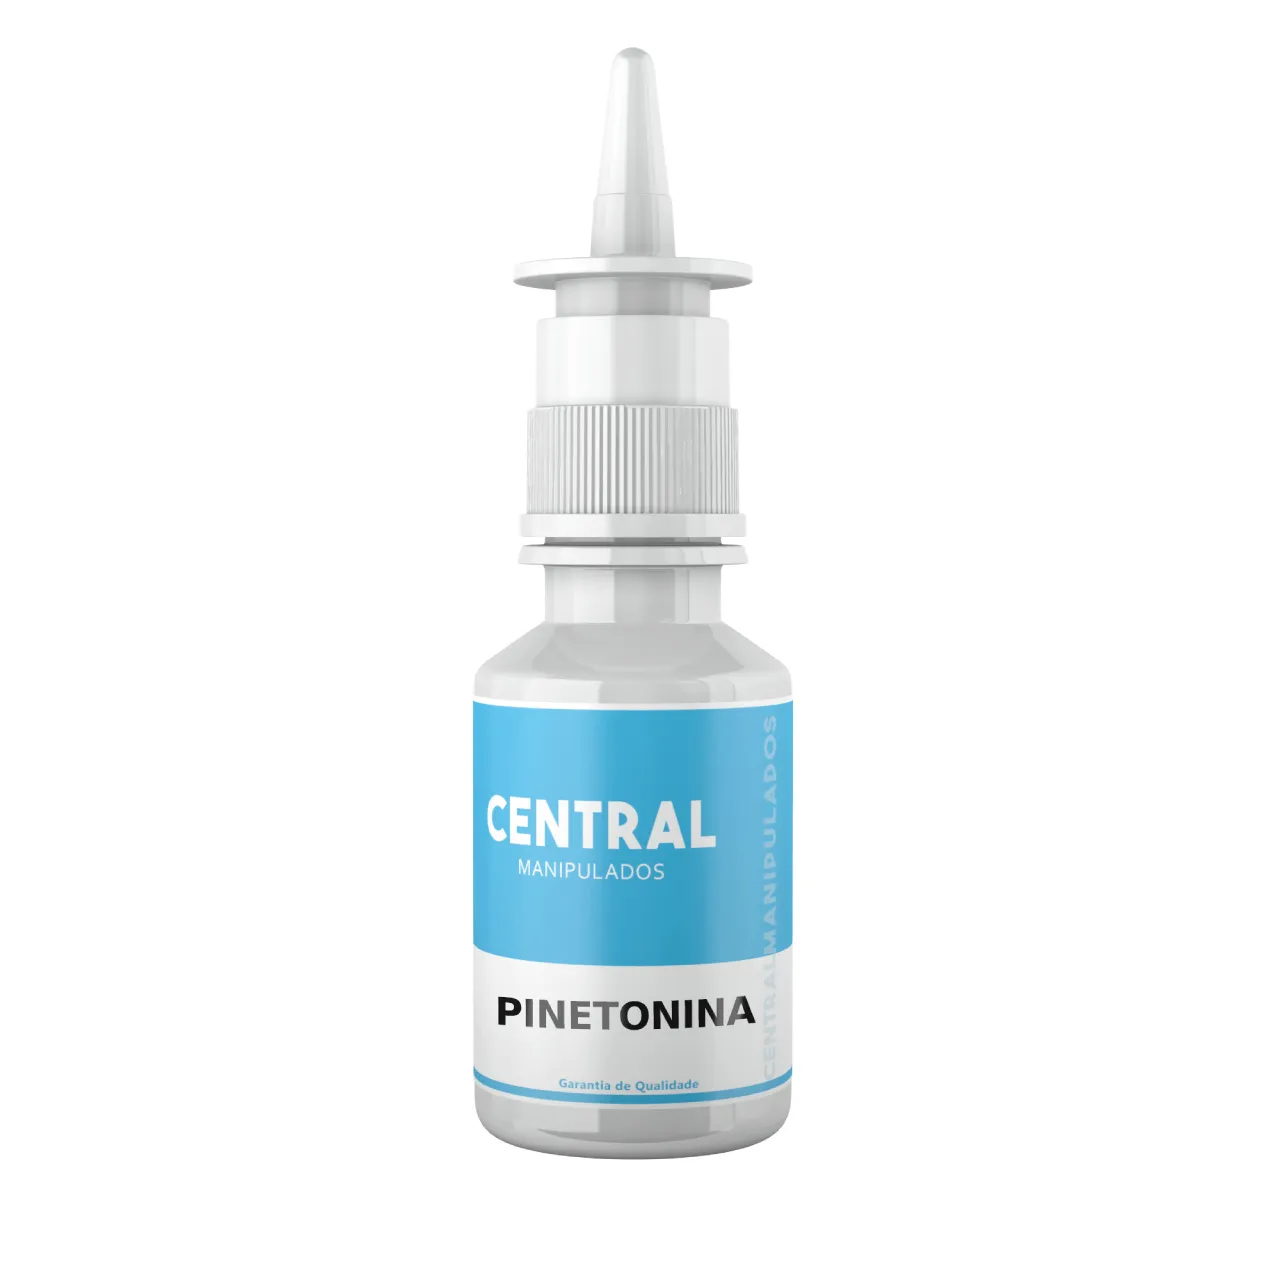 Pinetonina® 50% - Spray Uso Nasal - 30ml